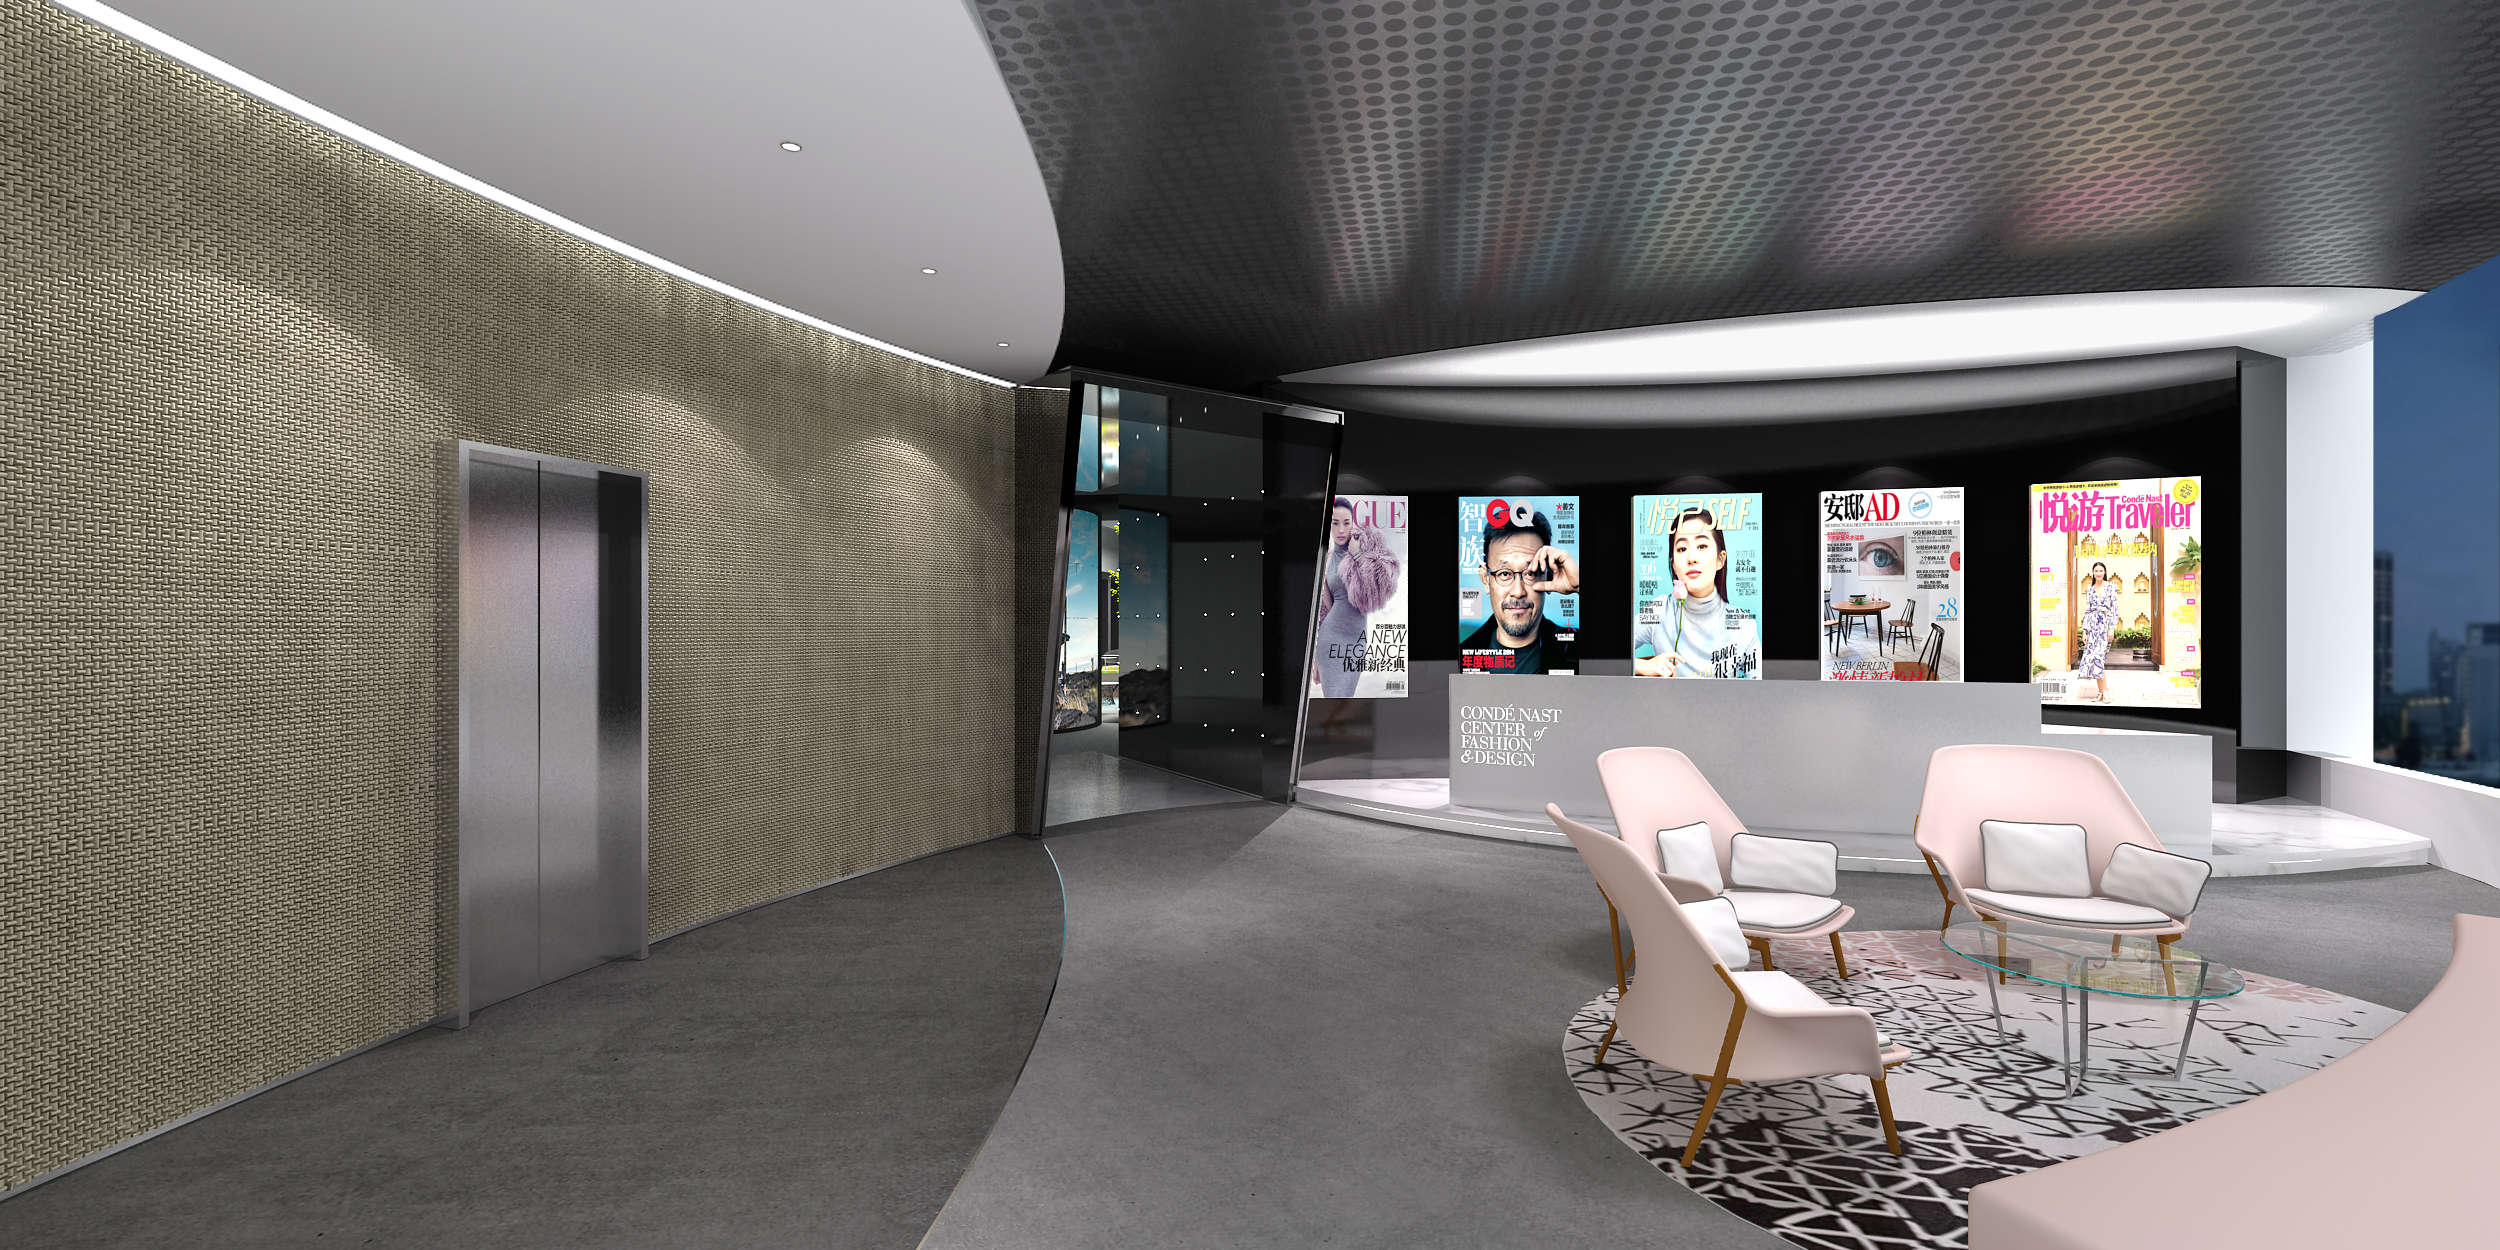 A rendering of the Condé Nast Center in Shanghai. Photo: Condé Nast